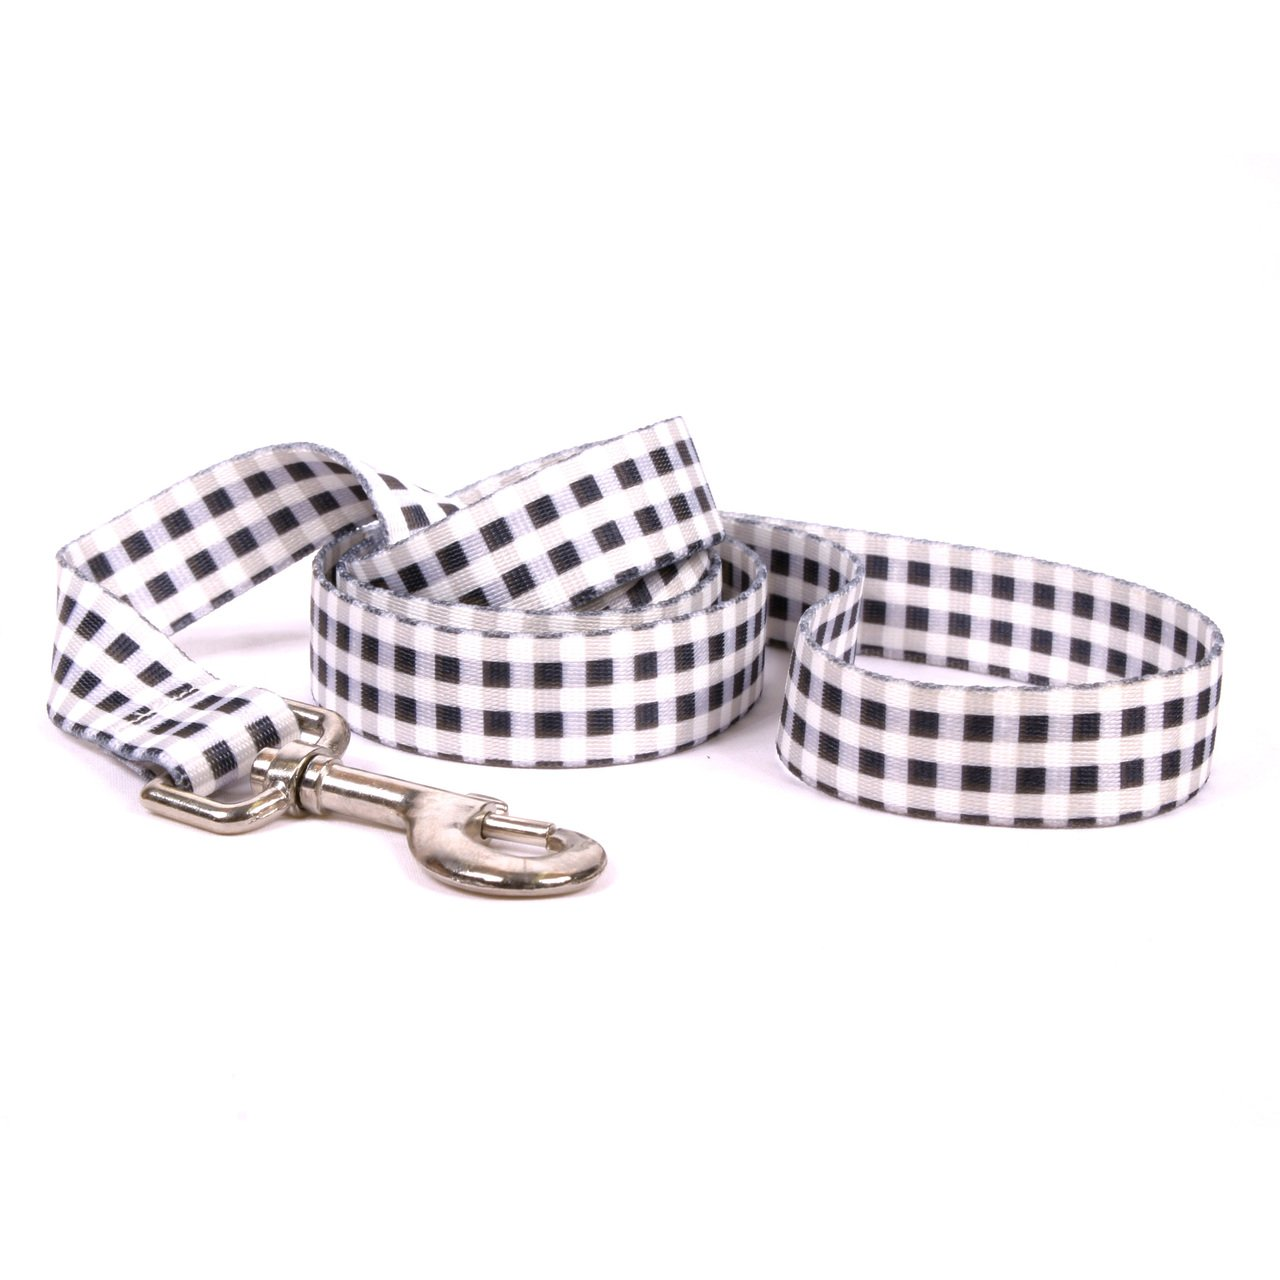 Yellow Dog Design Gingham Black Dog Leash 3/8'' Wide And 5' (60'') Long, X-Large